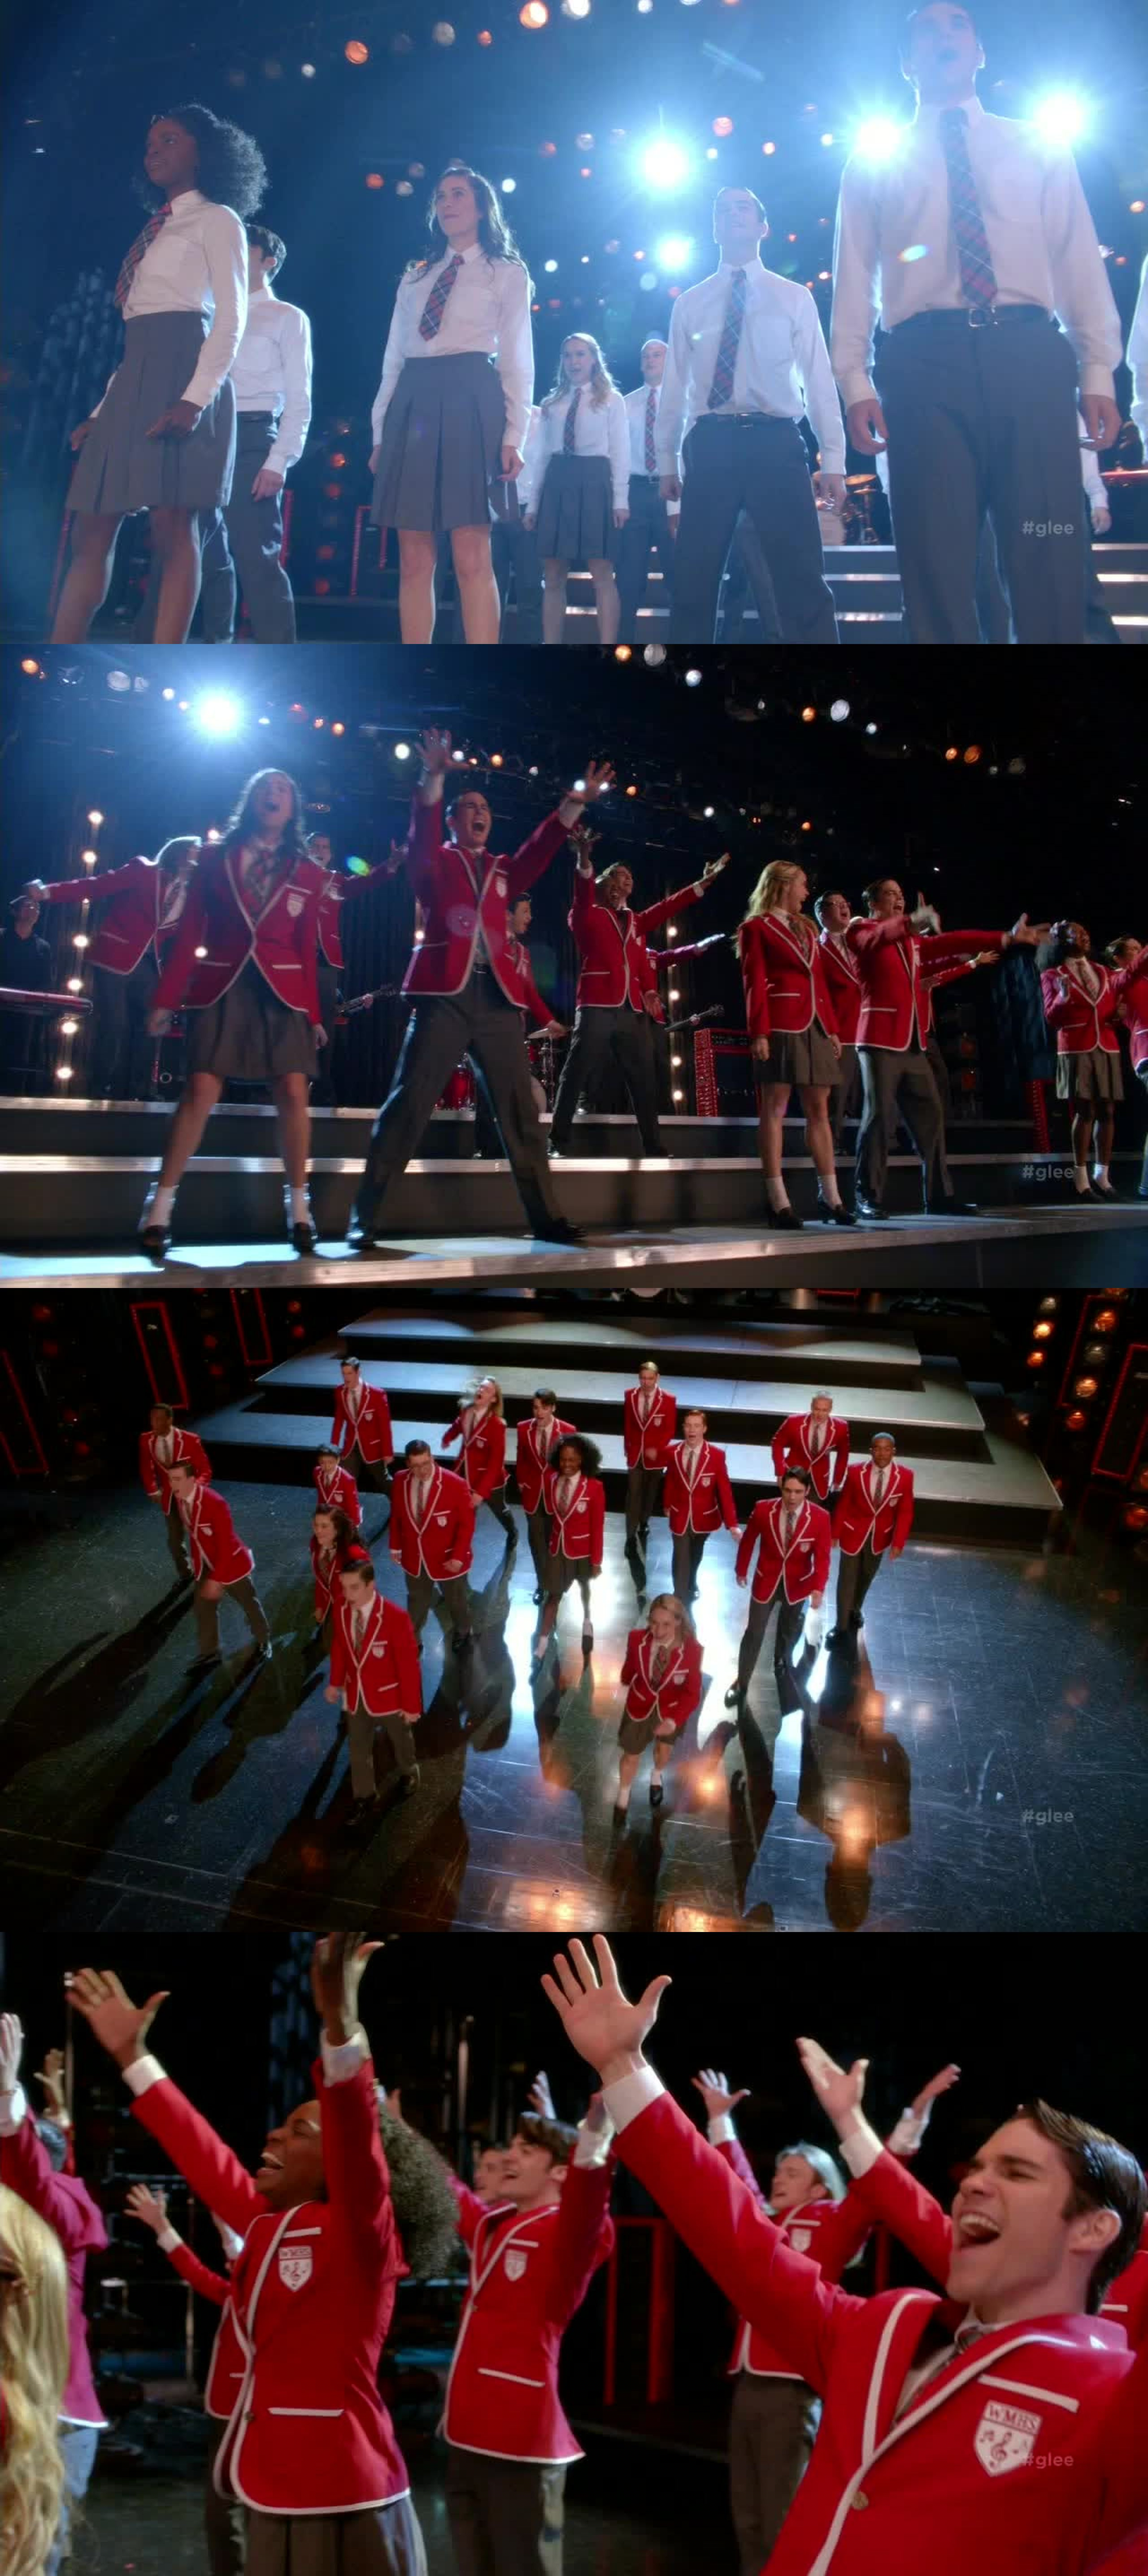 Loved this performance! So proud of Darren!